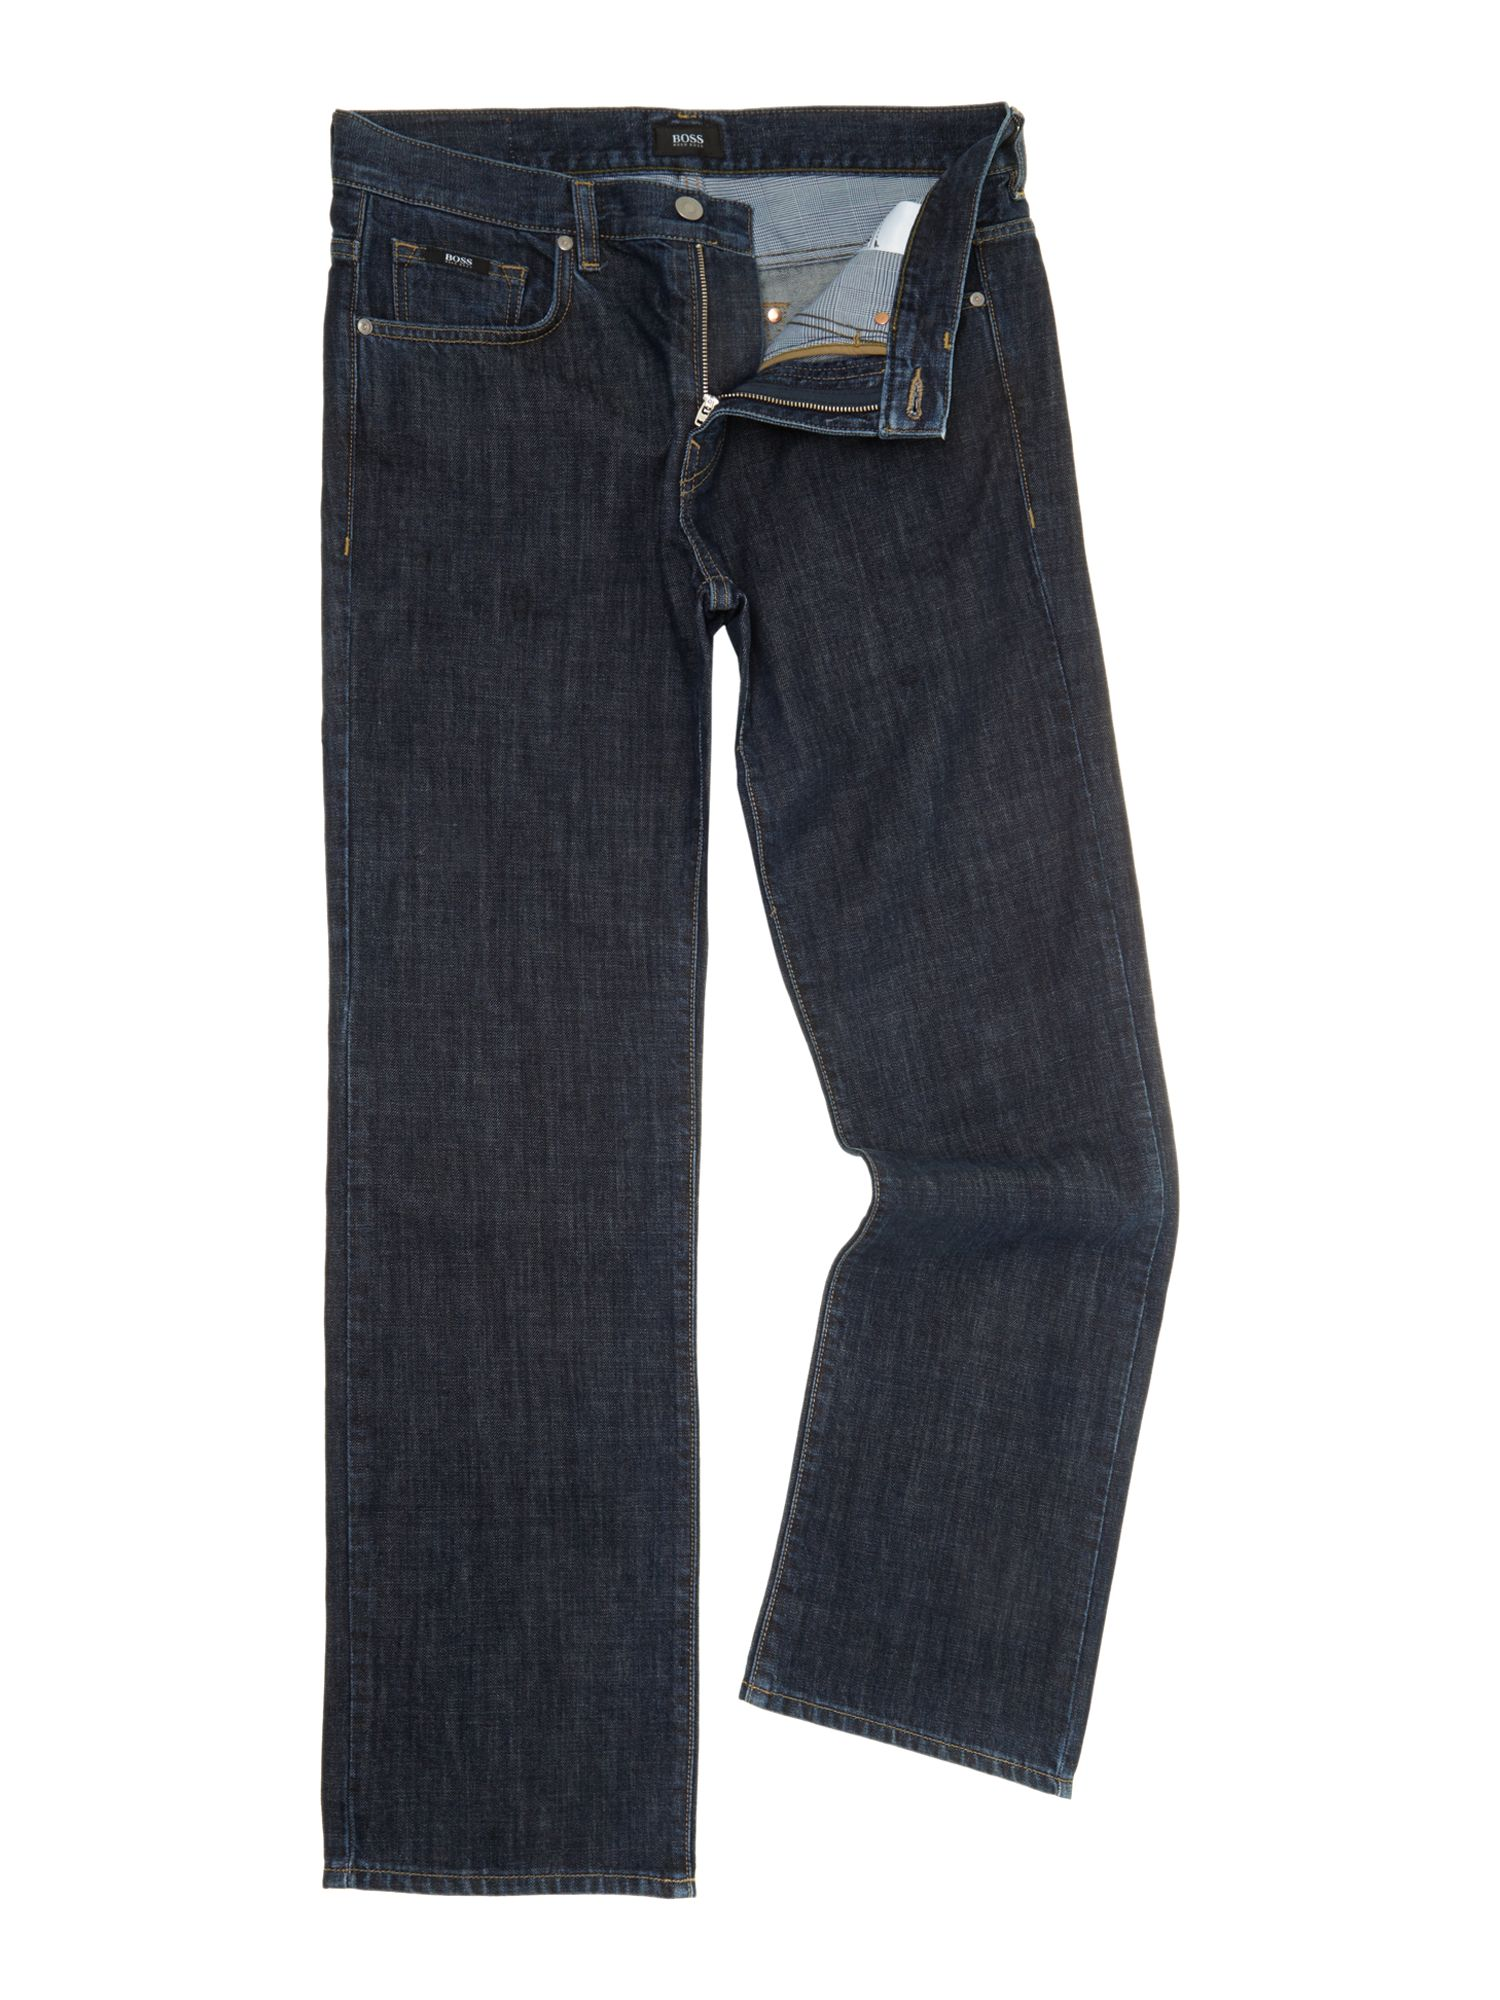 Kansas rinse wash straight leg jean